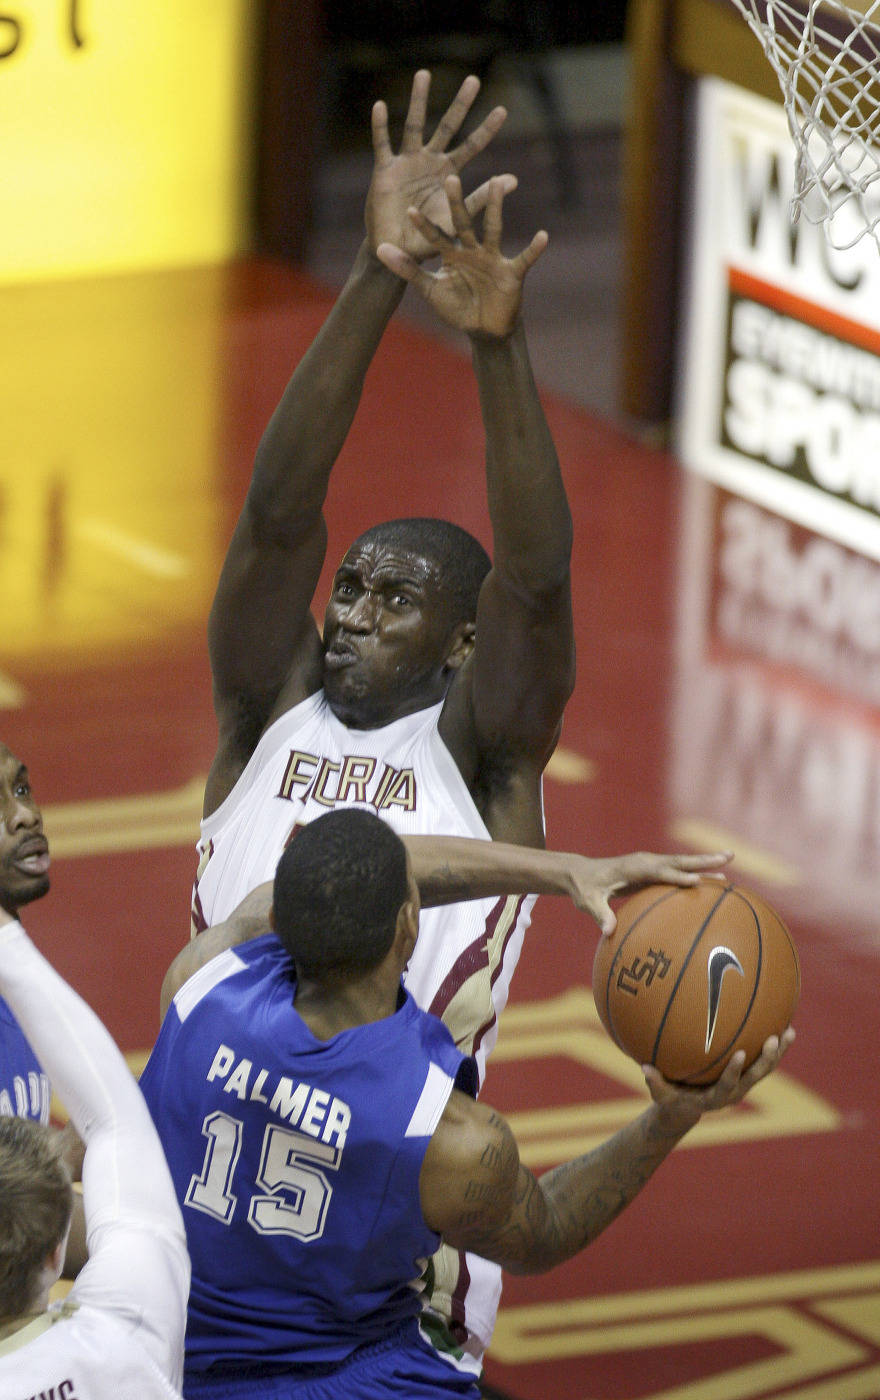 Texas A&M-Corpus Christi's Kevin Palmer tries to shoot around the defensive efforts of Florida State's Solomon Alabi during the second half of an NCAA college basketball game Monday, Jan. 4, 2010, in Tallahassee, Fla. (AP Photo/Phil Coale)